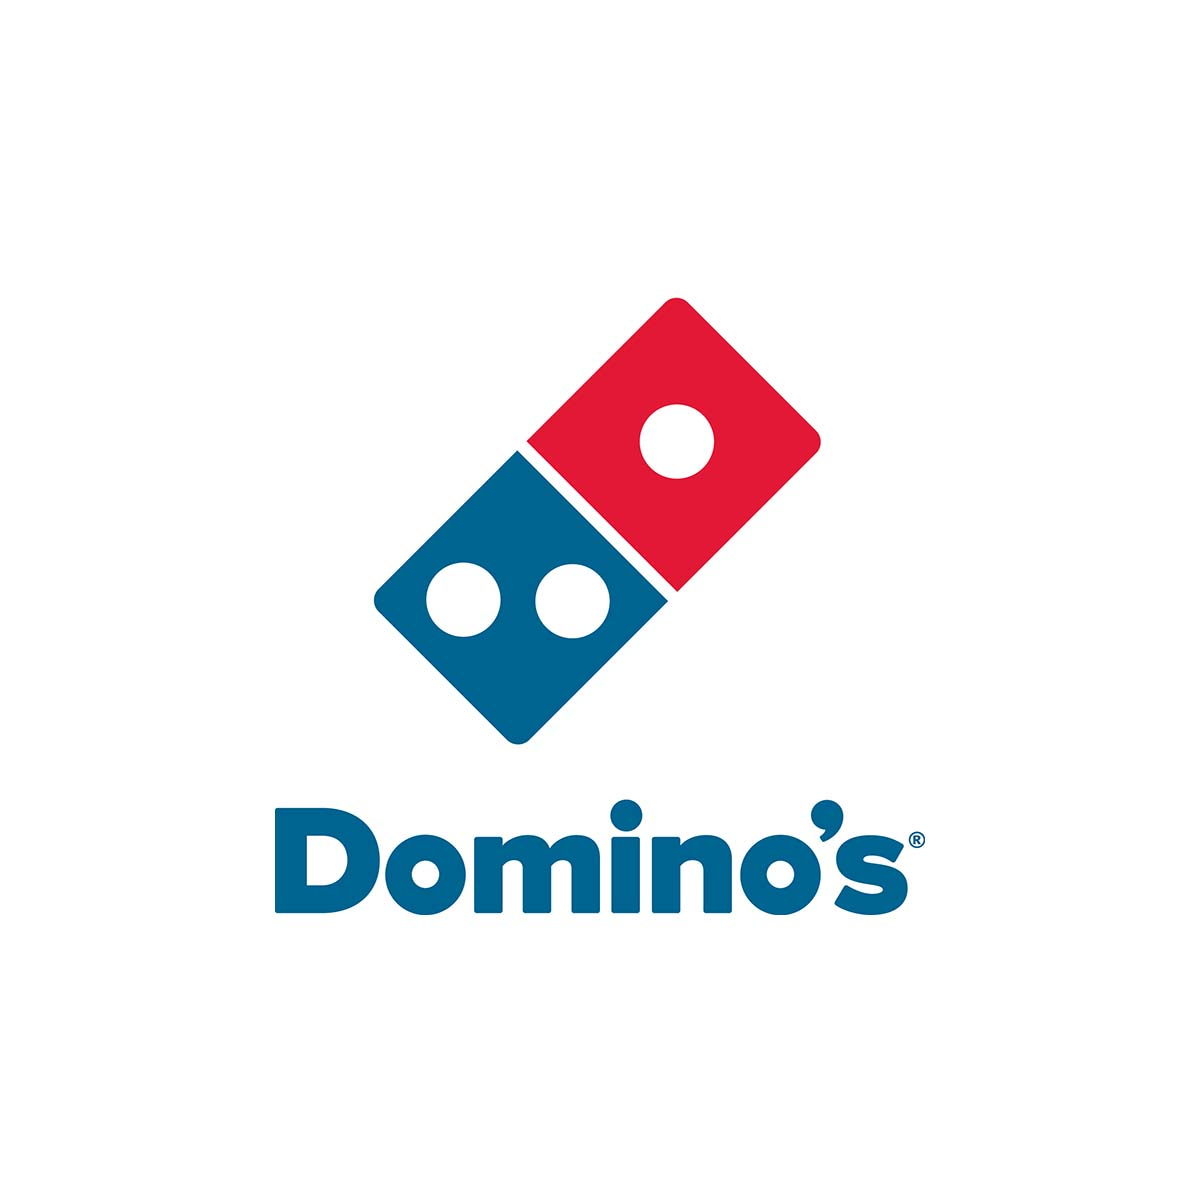 dominos karte Domino's Home Page   Domino's Pizza, Order Pizza Online for